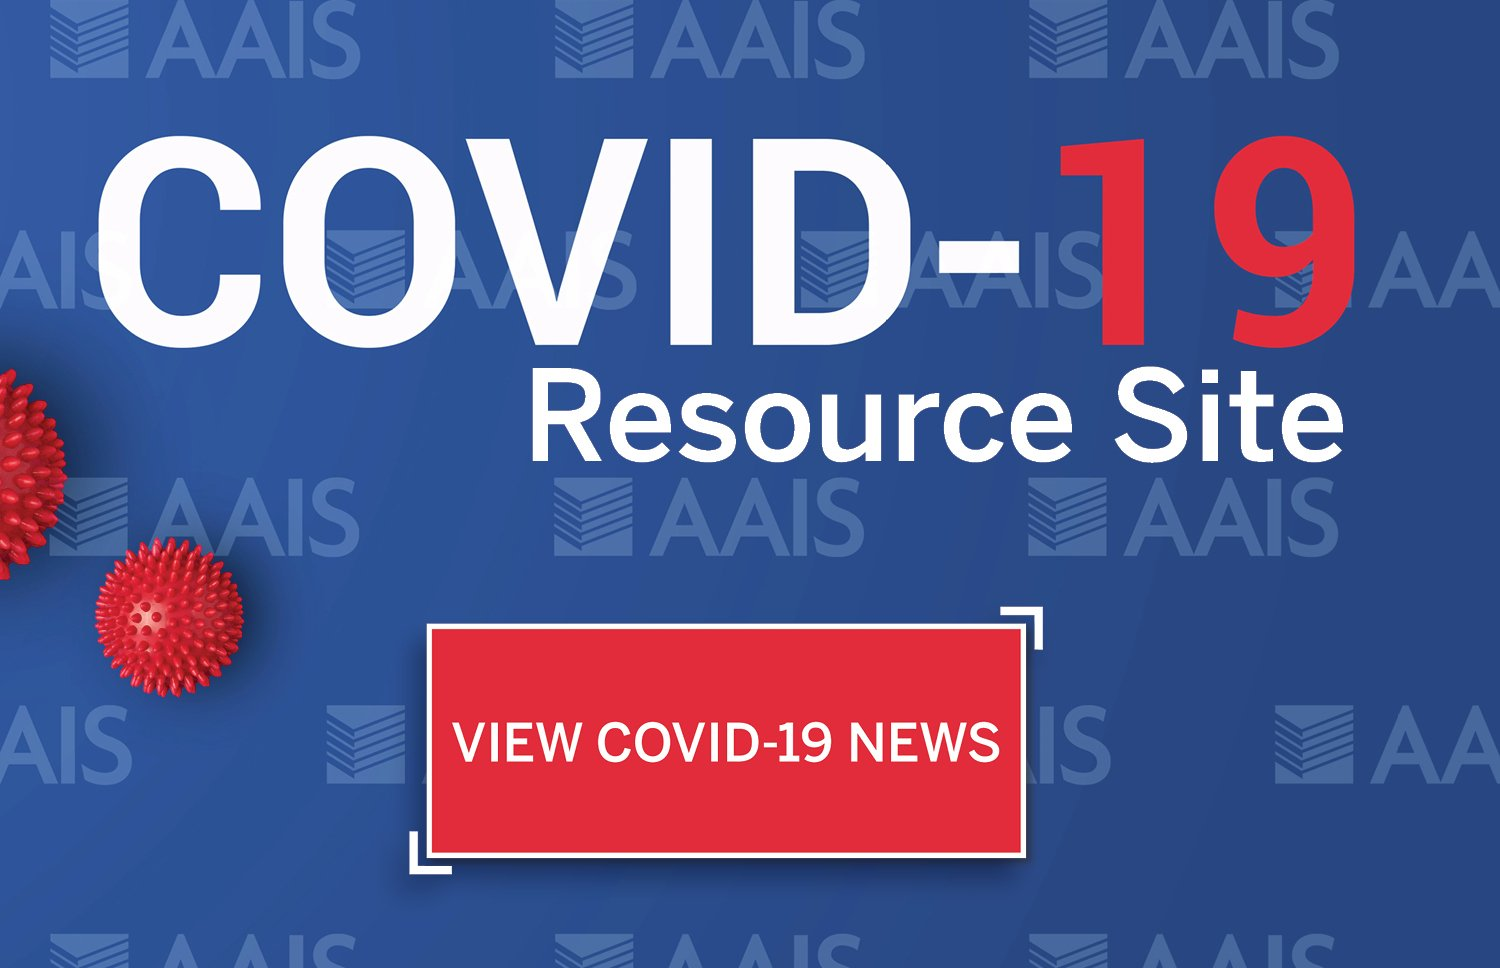 COVID-19 Resource site ad